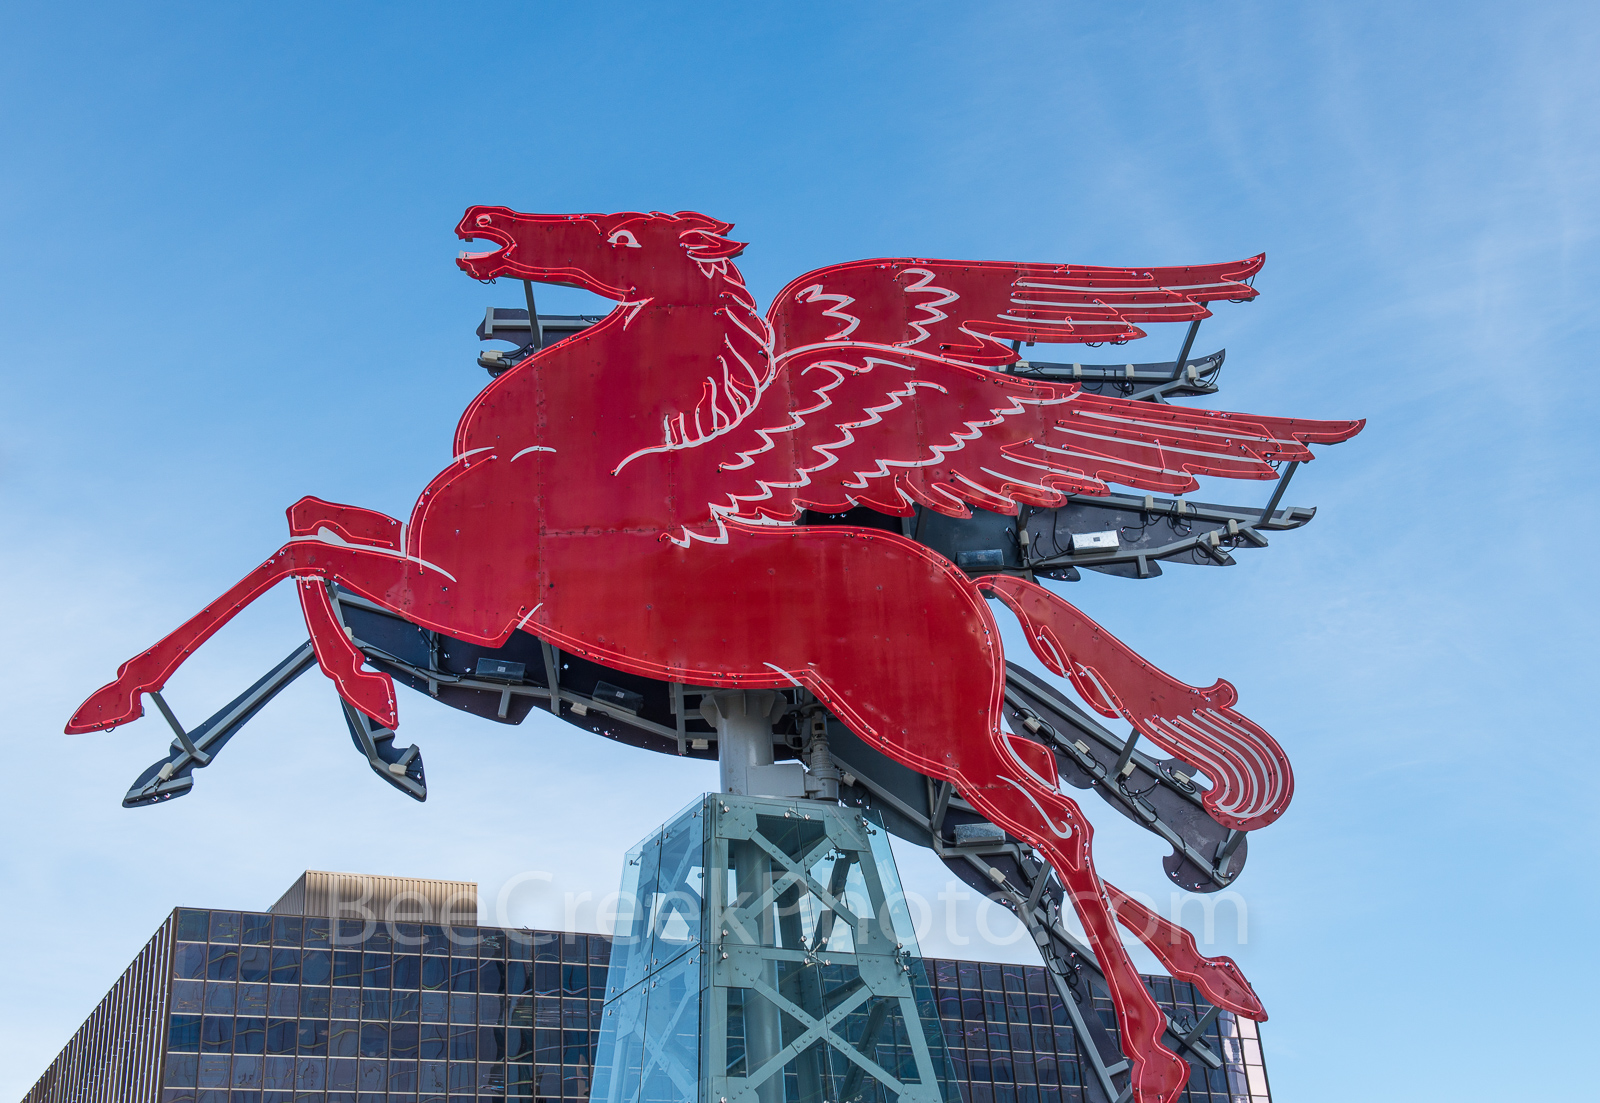 Dallas, Magnolia Hotel, Magnolia Oil company, symbol, Pegasus, cityscape, cityscapes, downtown, flying horse, neon, neon sign, oil derrick, red, Omni, Hotel,  , photo